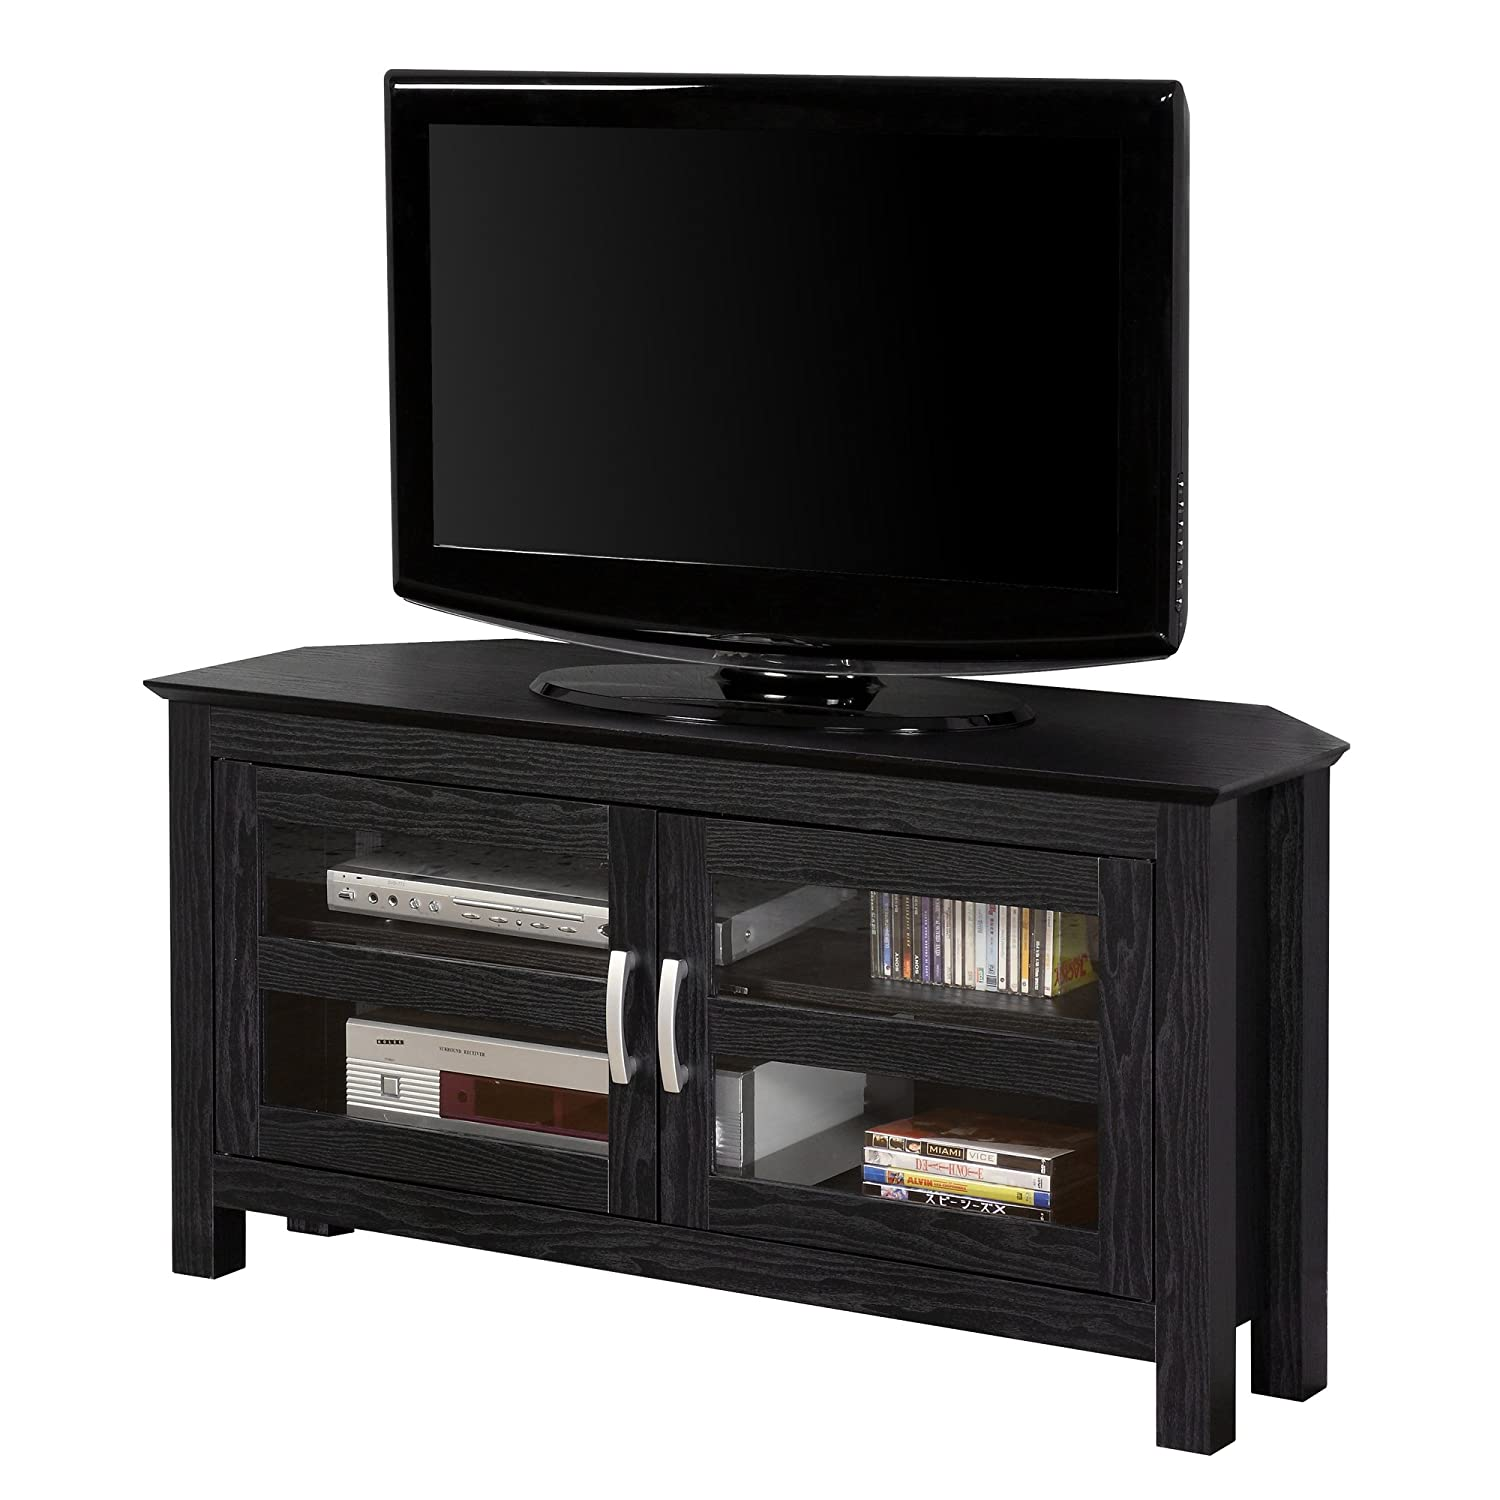 Amazon.com: New 44 Inch Wide Corner TV Stand, Black Finish And Glass Doors:  Kitchen U0026 Dining